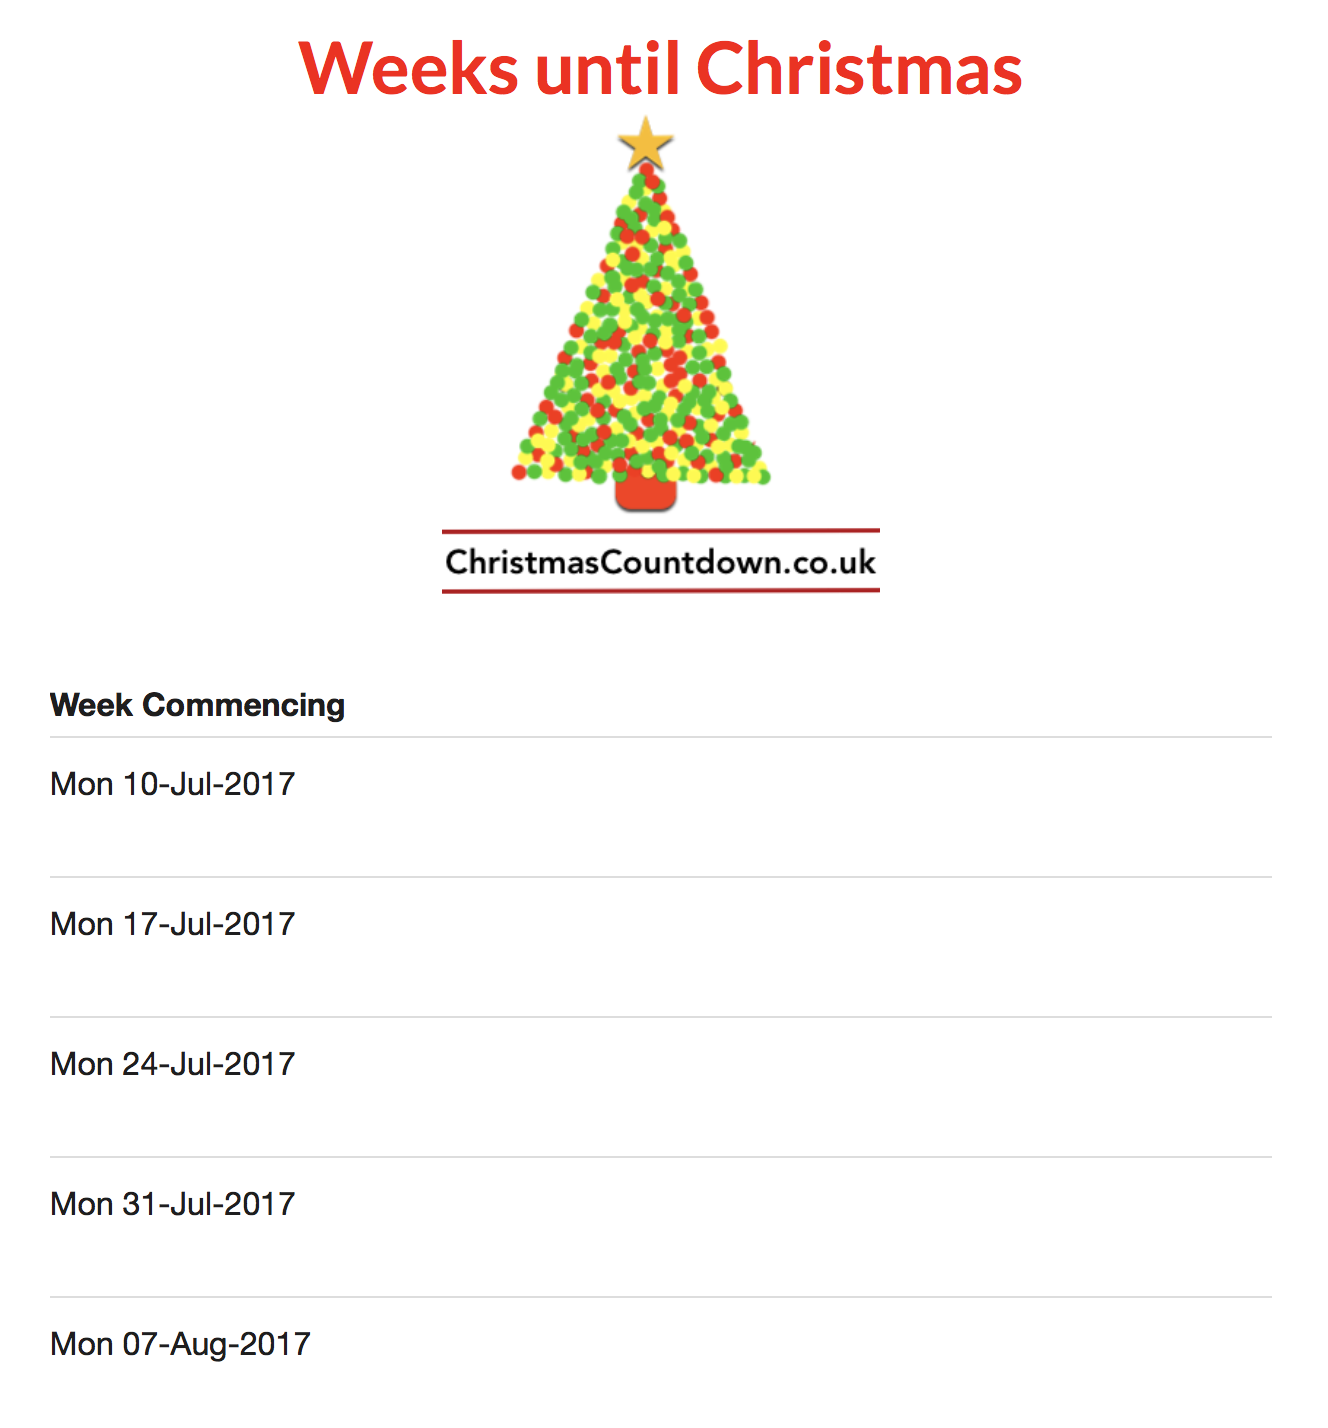 It's 24 weeks until Christmas 2017